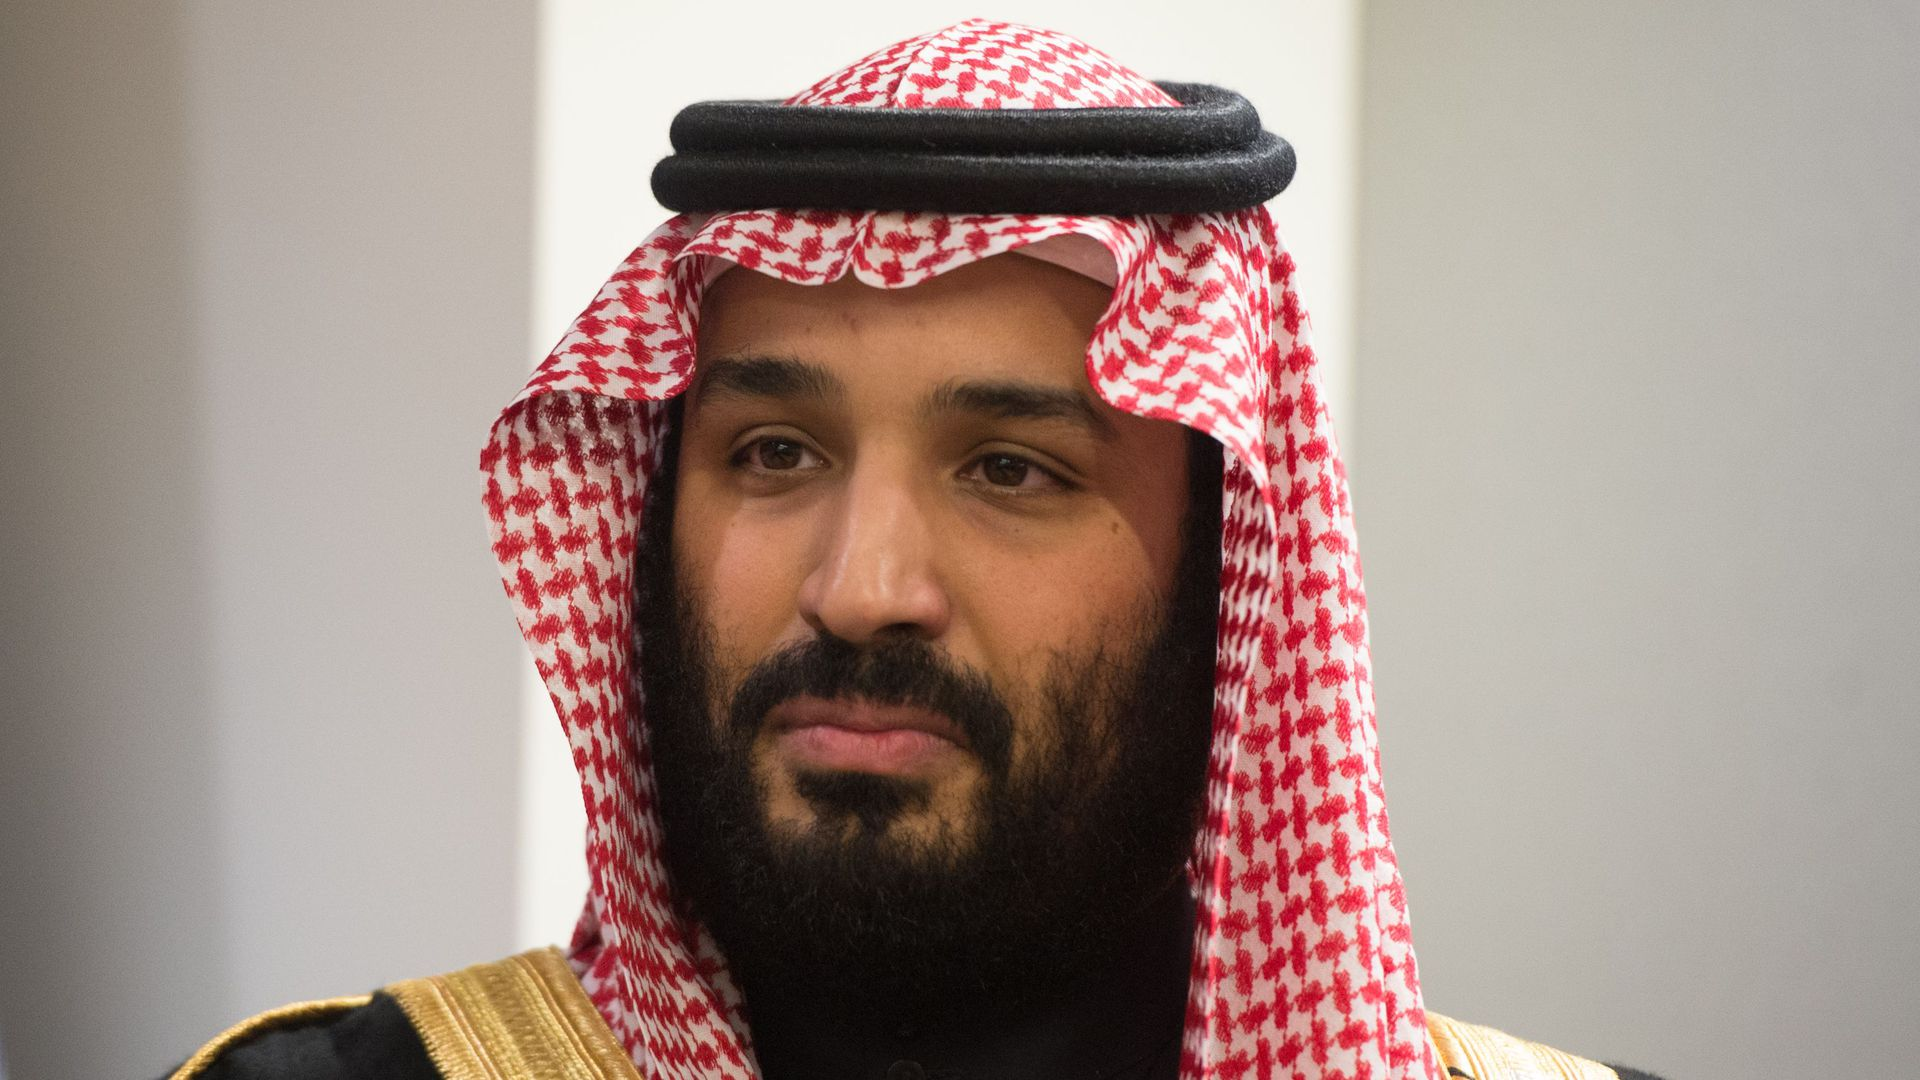 Head shot of Prince Mohammed bin Salman Al Saud, Crown Prince, Kingdom of Saudi Arabia